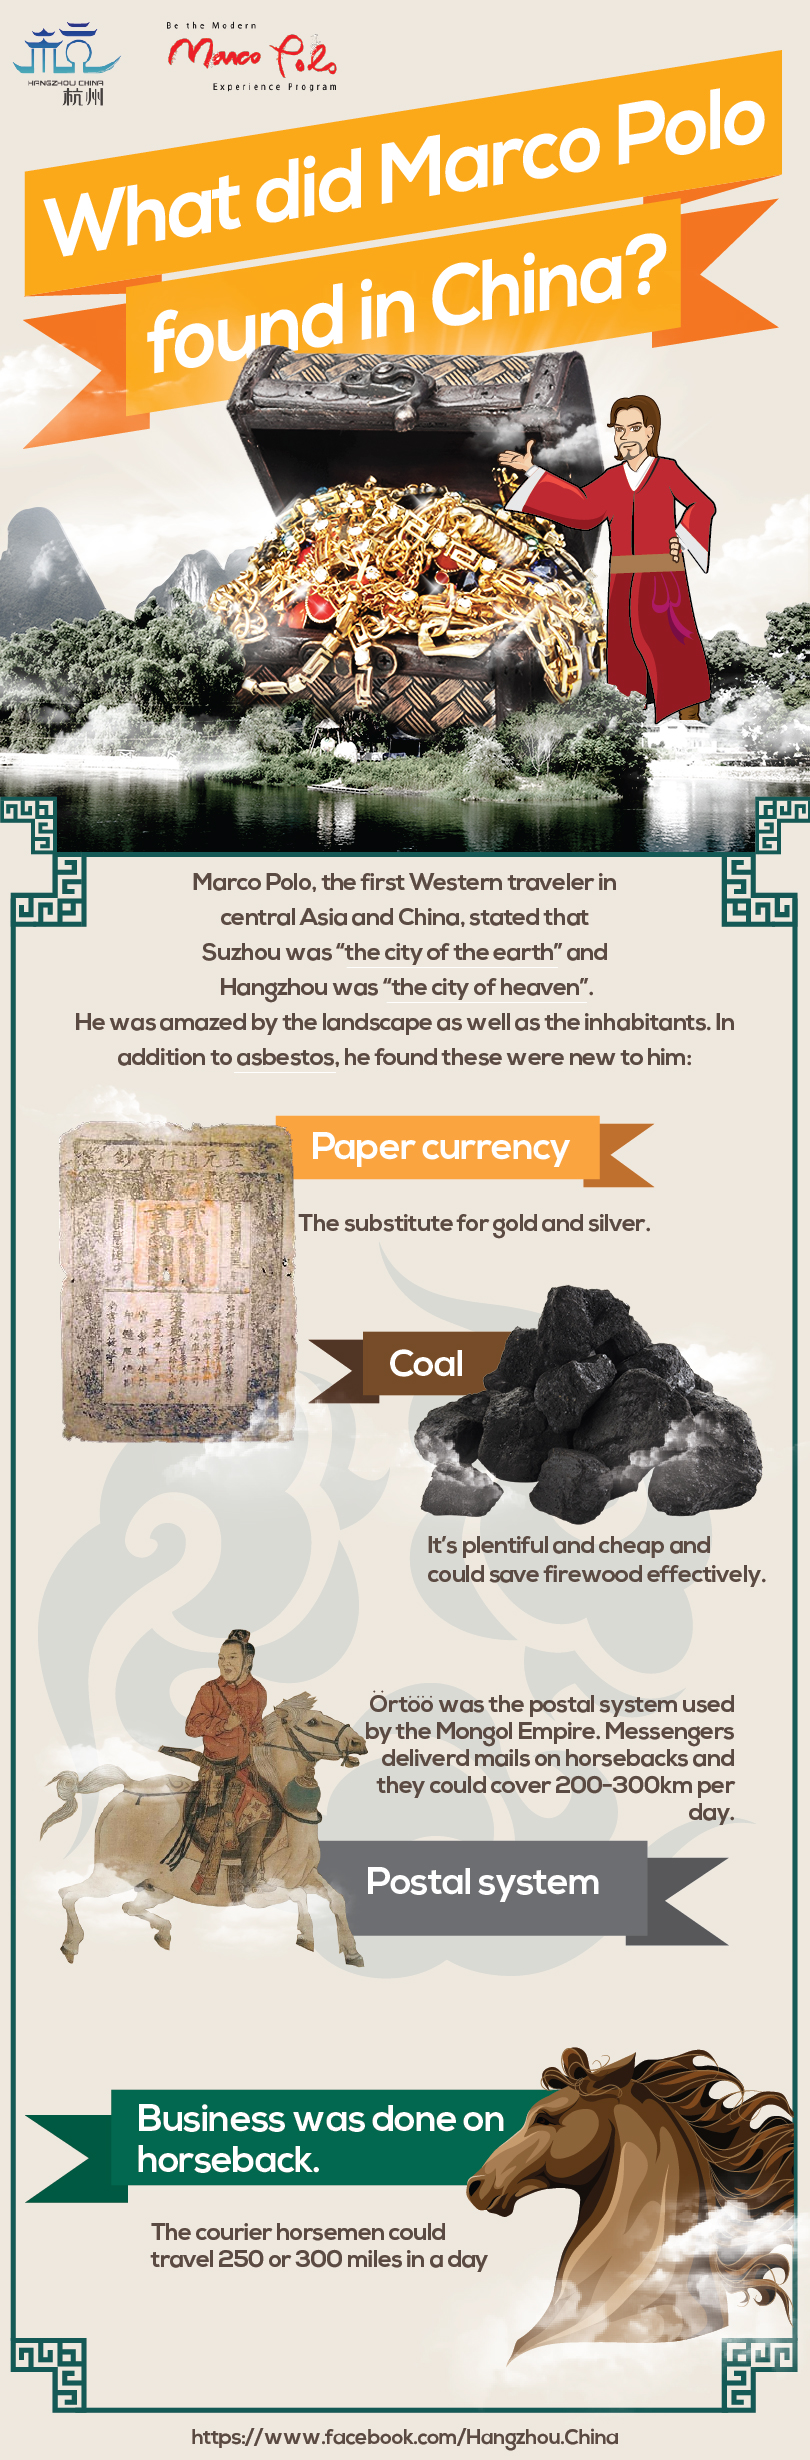 What kind of treasures did Marco Polo find? Check out the